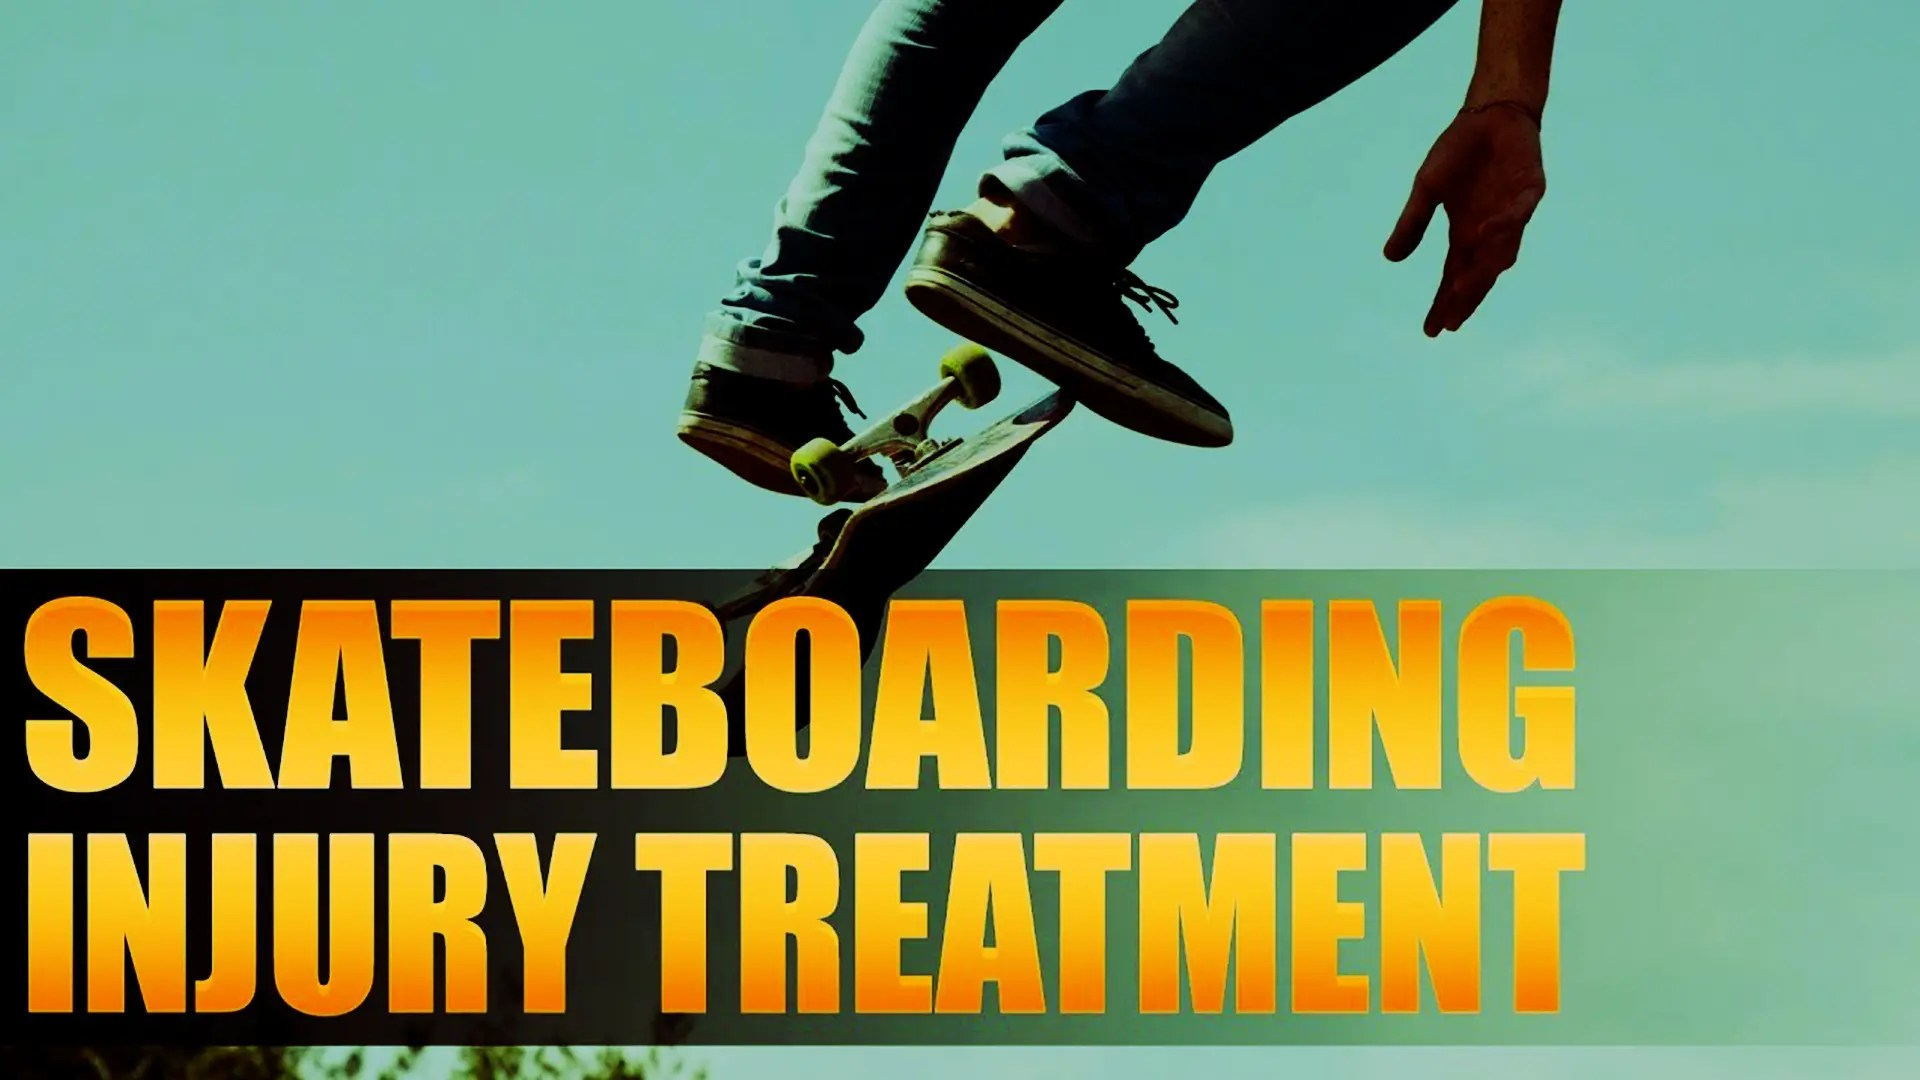 Skateboarding Injury Treatment | El Paso, TX. | Video